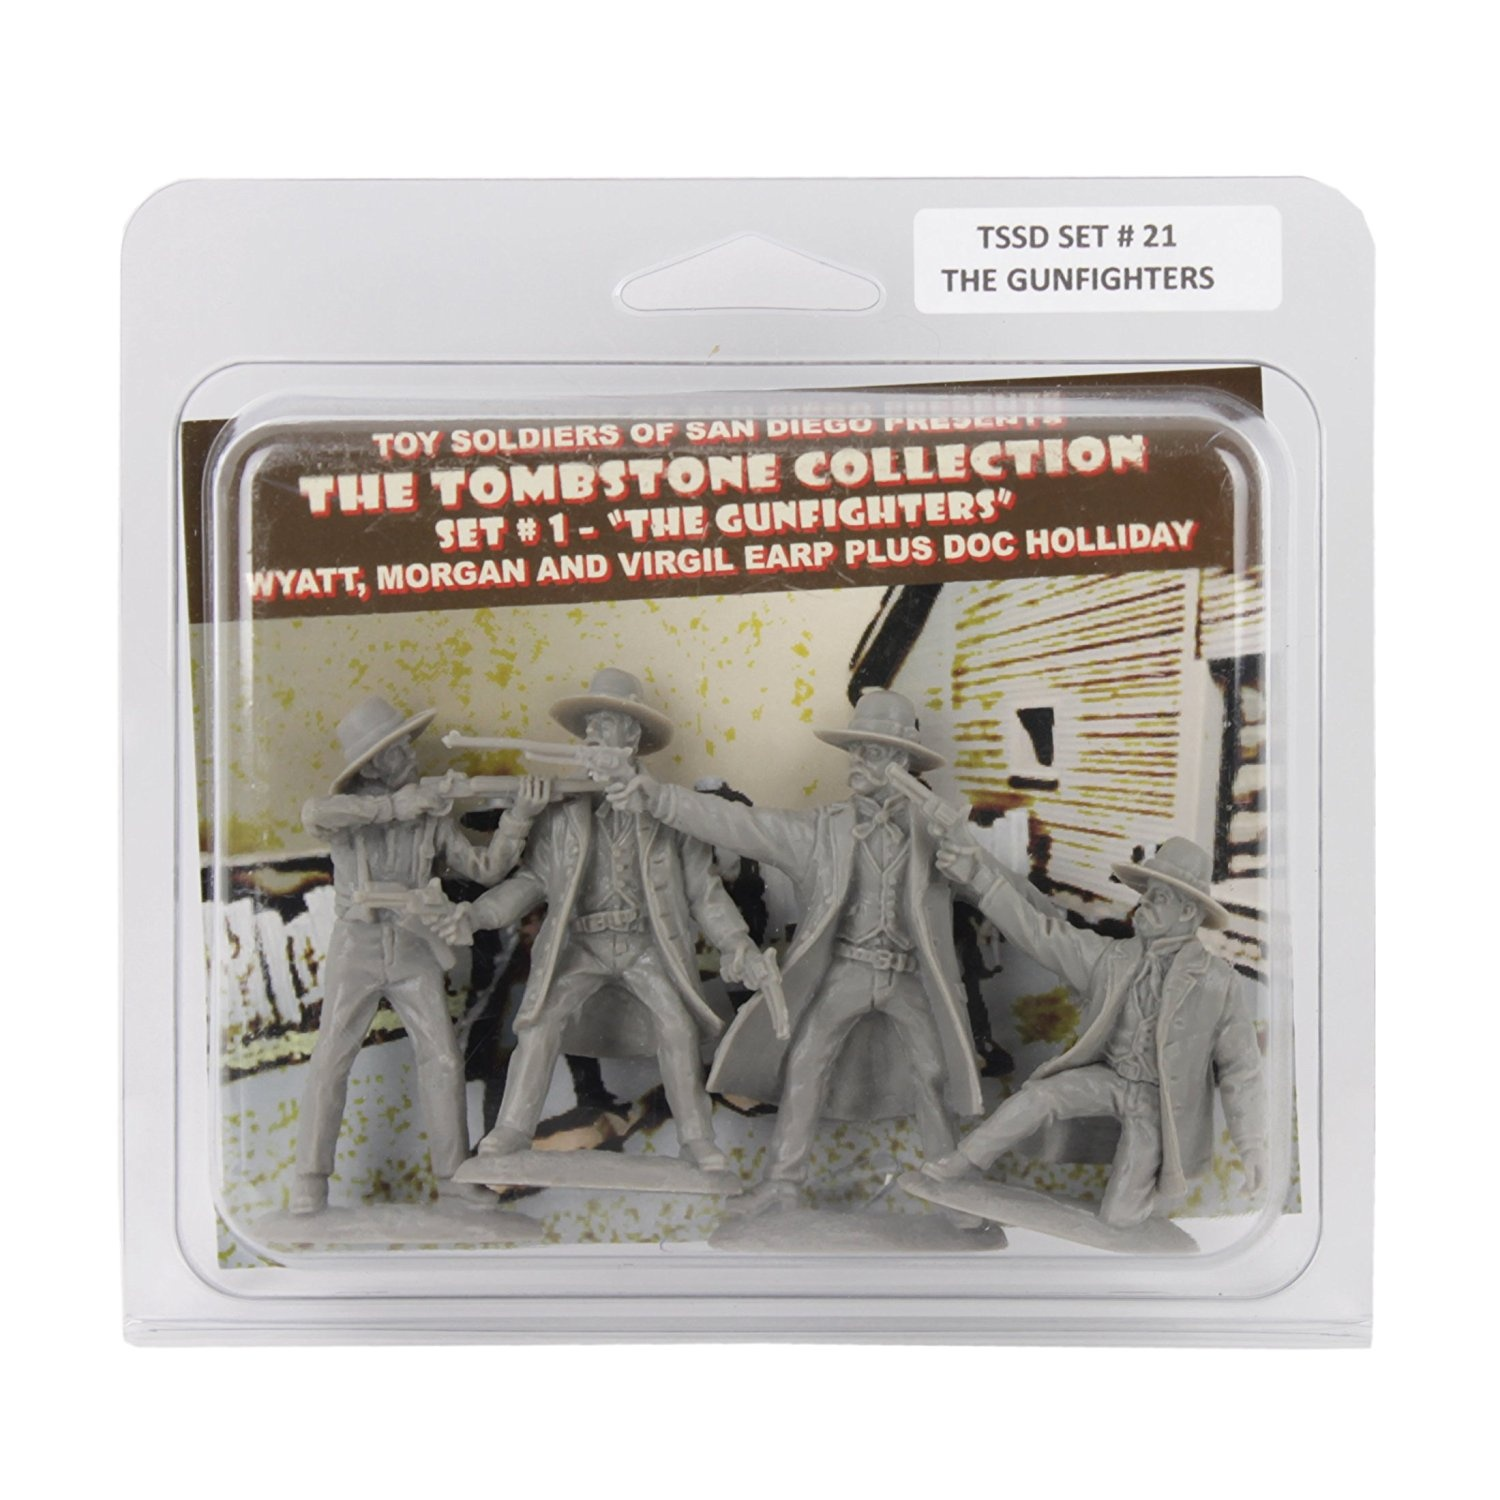 TSSD TOMBSTONE Earps & Doc Holliday: 4 grey 1:32 Plastic Cowboy Figures by  Toy Soldiers of San Diego